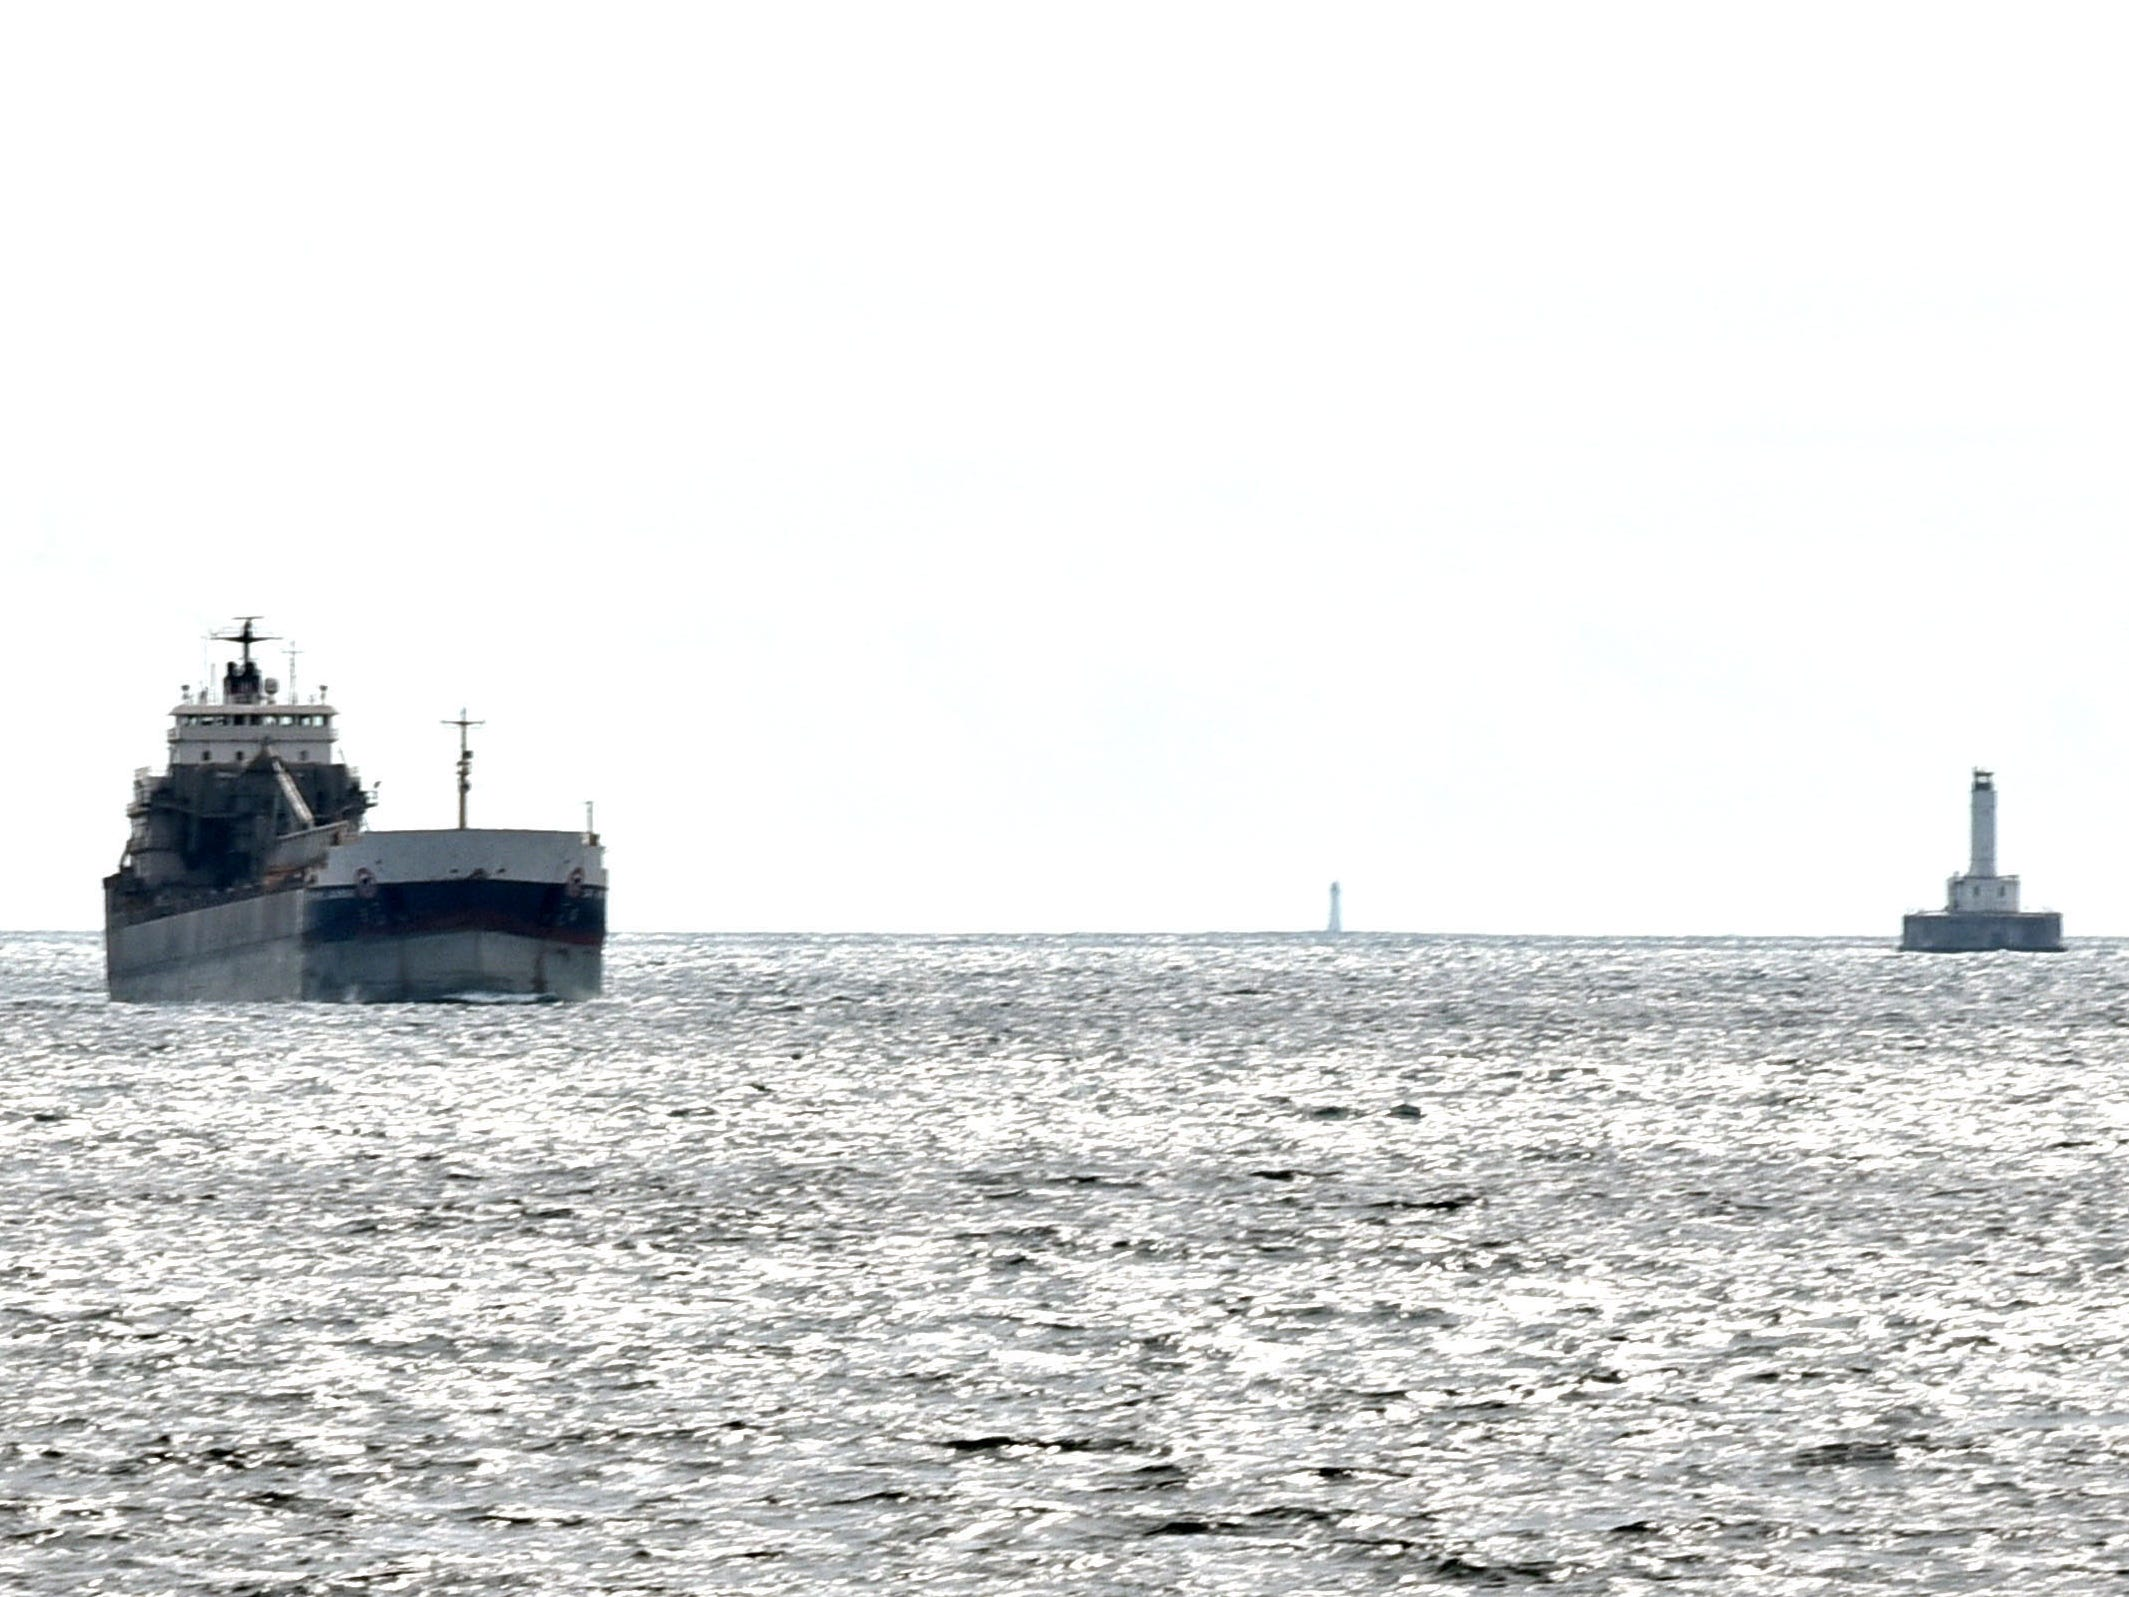 The Canadian bulk carrier Capt. Henry Jackman rounds Gray's Reef Light headed toward the White Shoal Lighthouse Sunday, Sept. 2, 2018, sailing toward the Straits of Mackinac. The northern shippiing lanes are littered with shallow,  dangerous shoals, marked by several century-old lighthouses to aid in navigation.